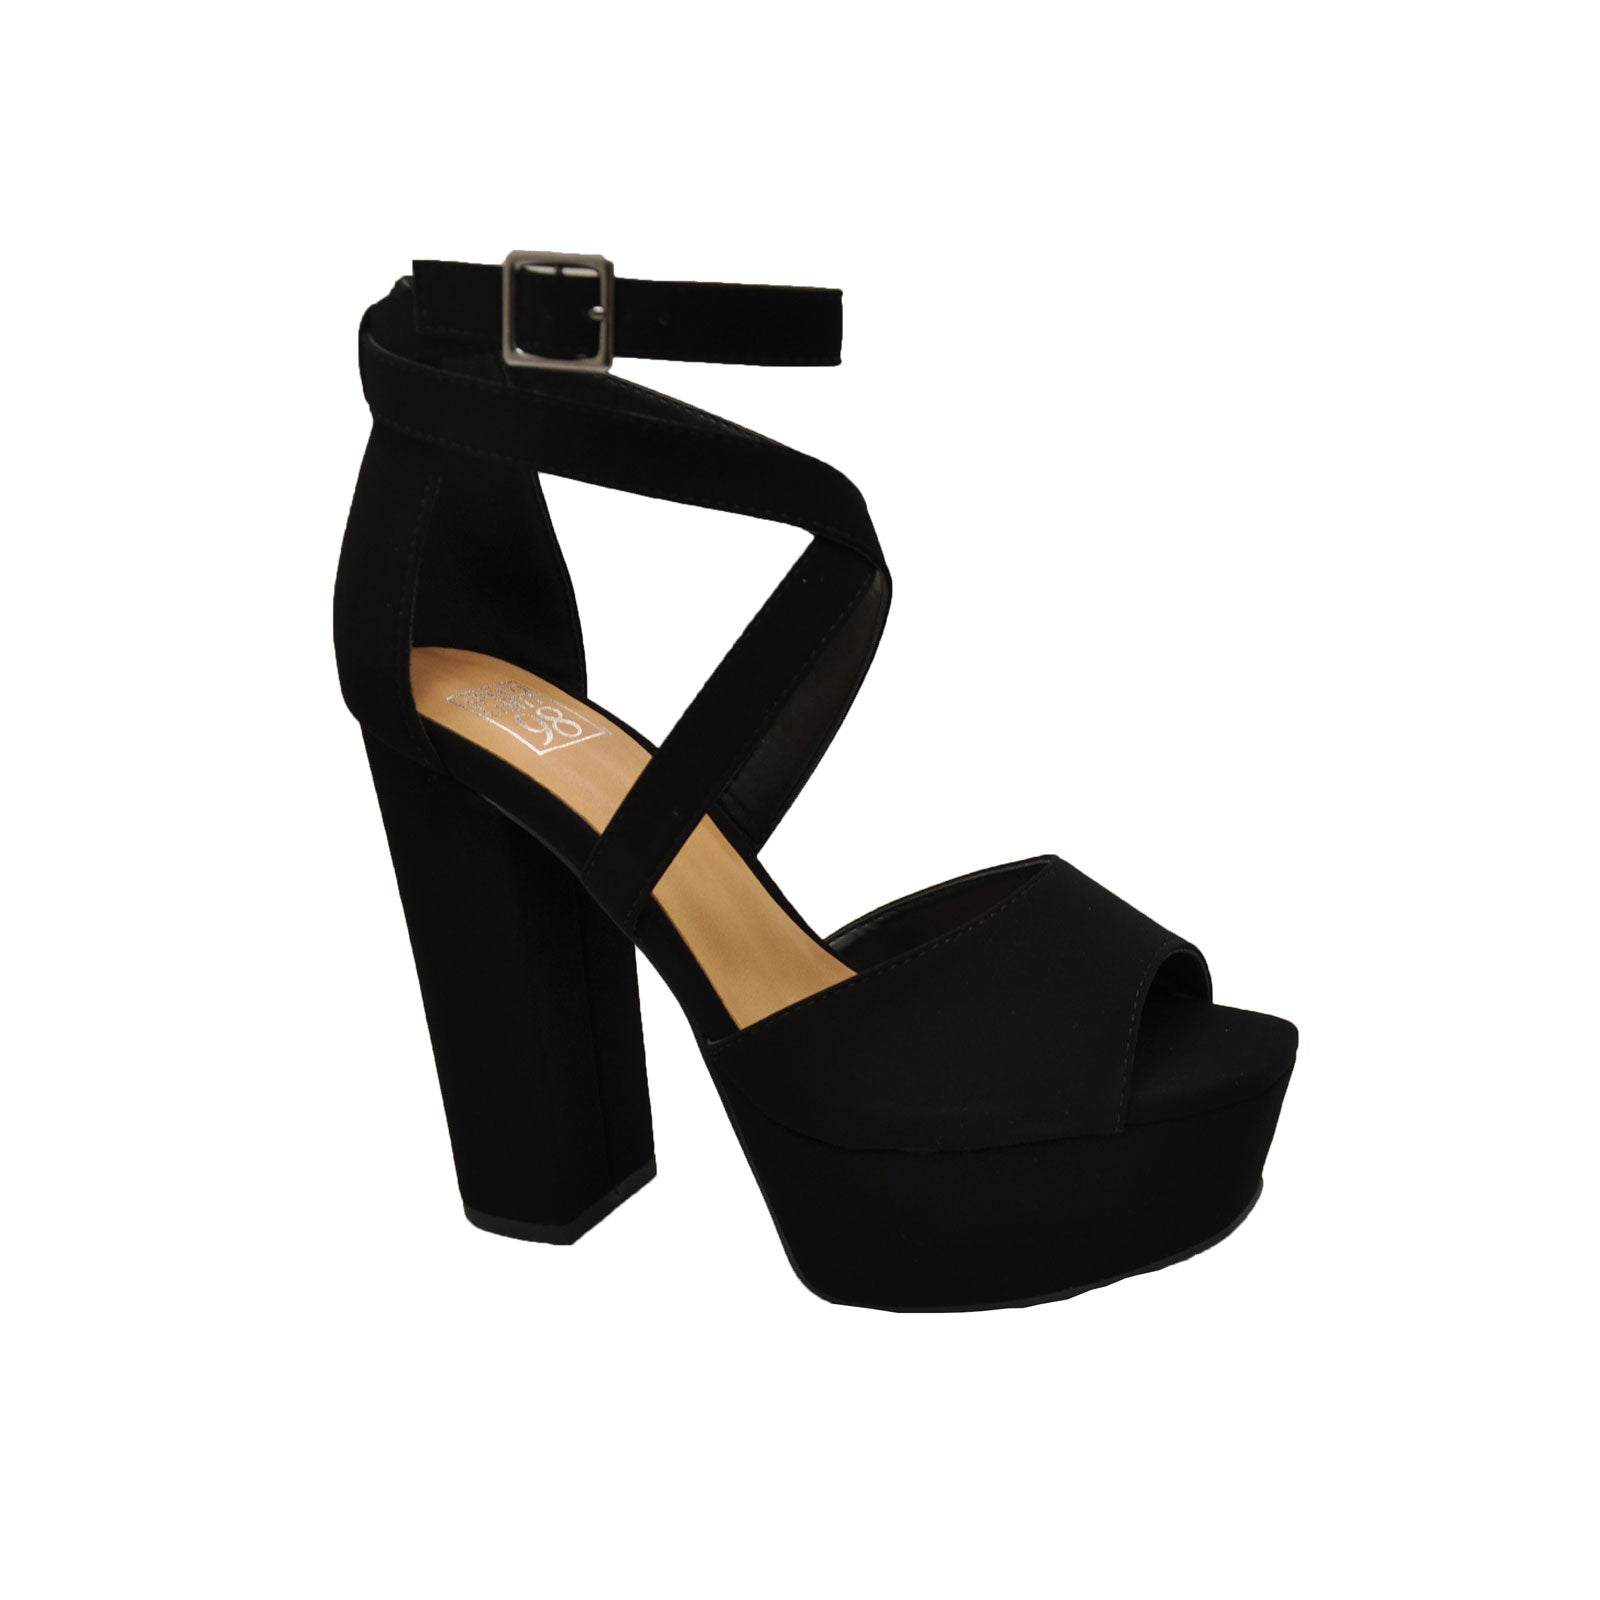 Speed Limit 98 Brand – Milano Shoes